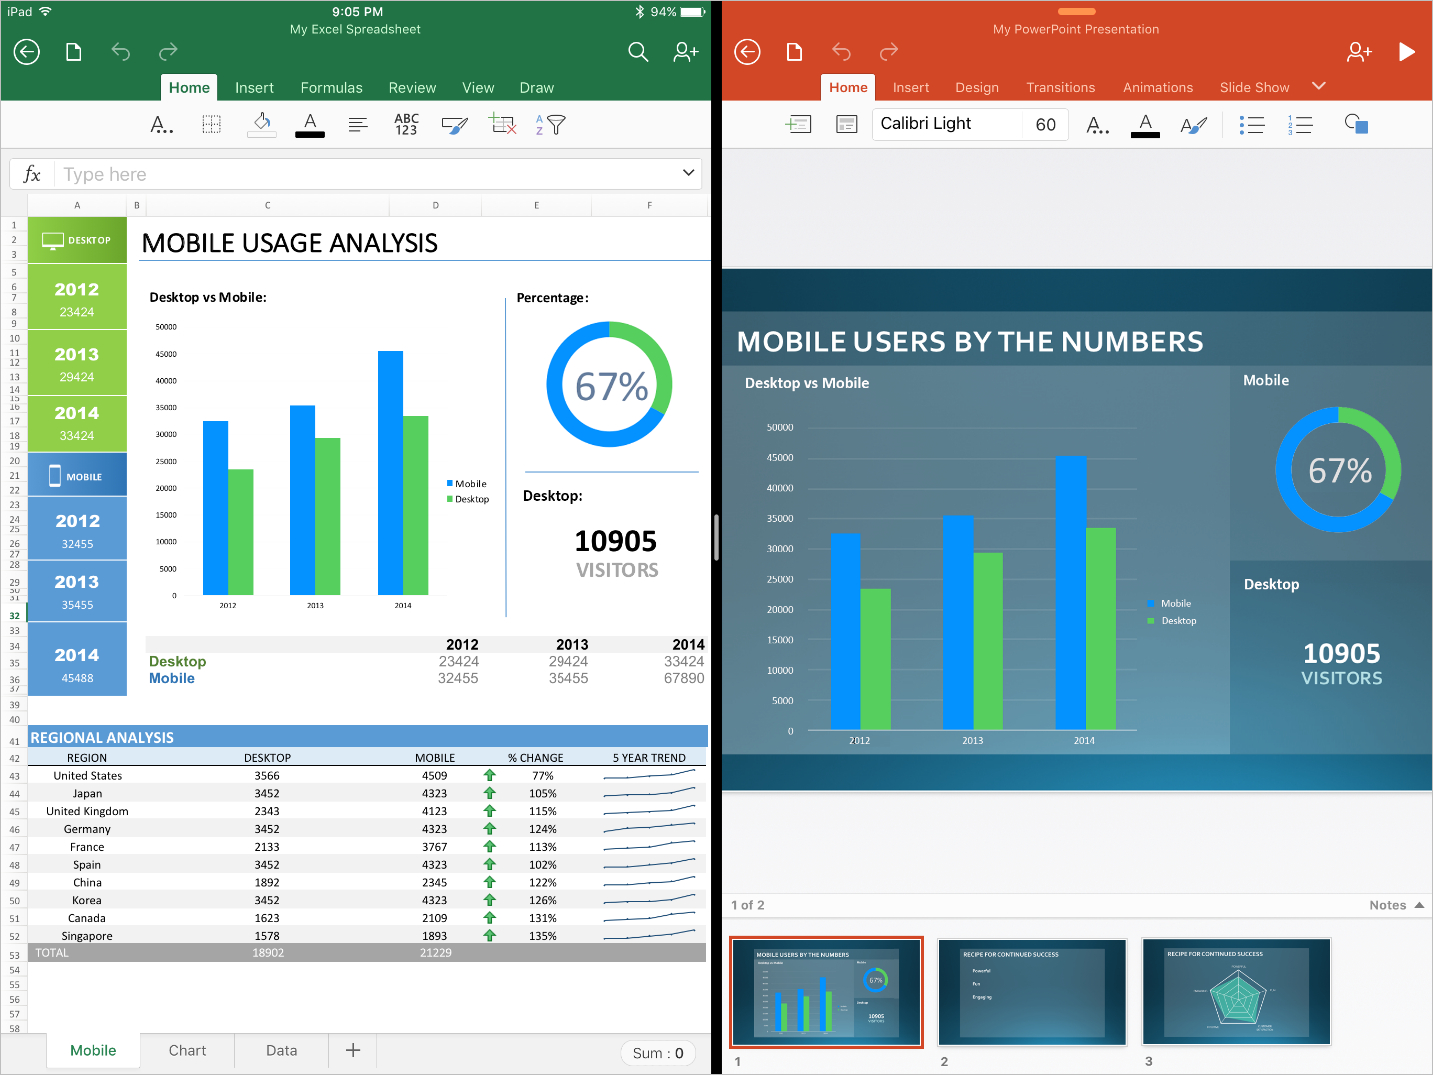 Microsoft Access Is A Spreadsheet Software For Microsoft Office Apps Are Ready For The Ipad Pro  Microsoft 365 Blog